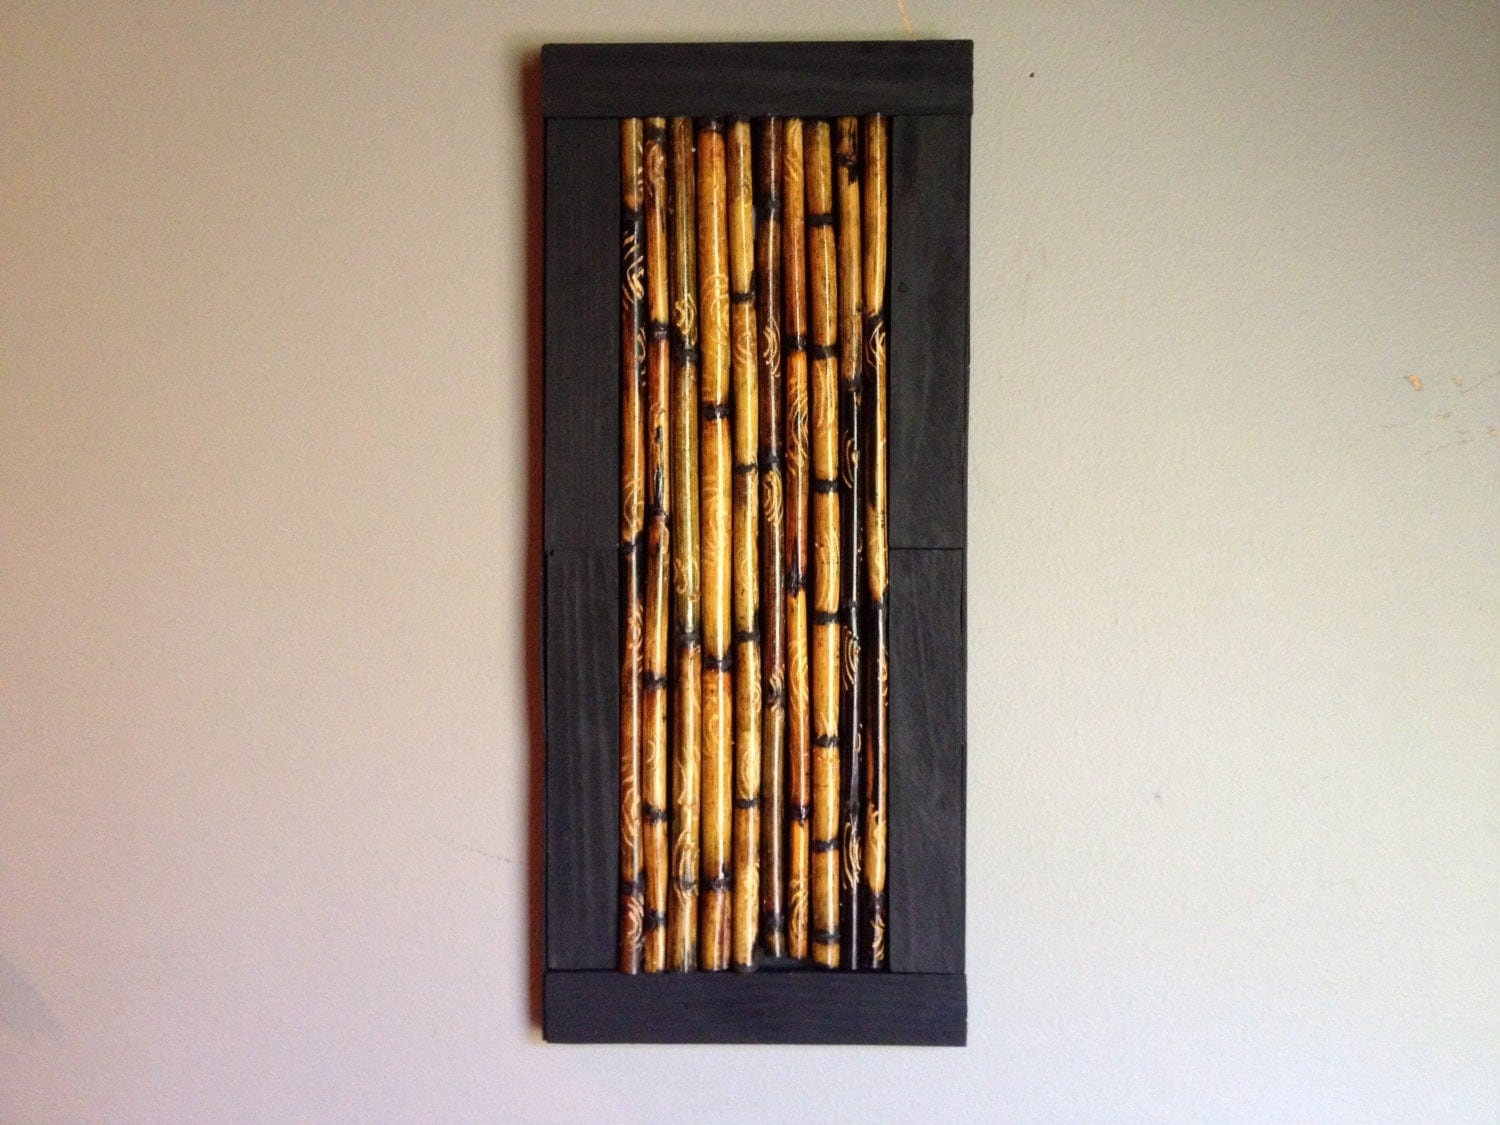 Bamboo stick framed art altered rustic designs bamboo art for Bamboo wall art